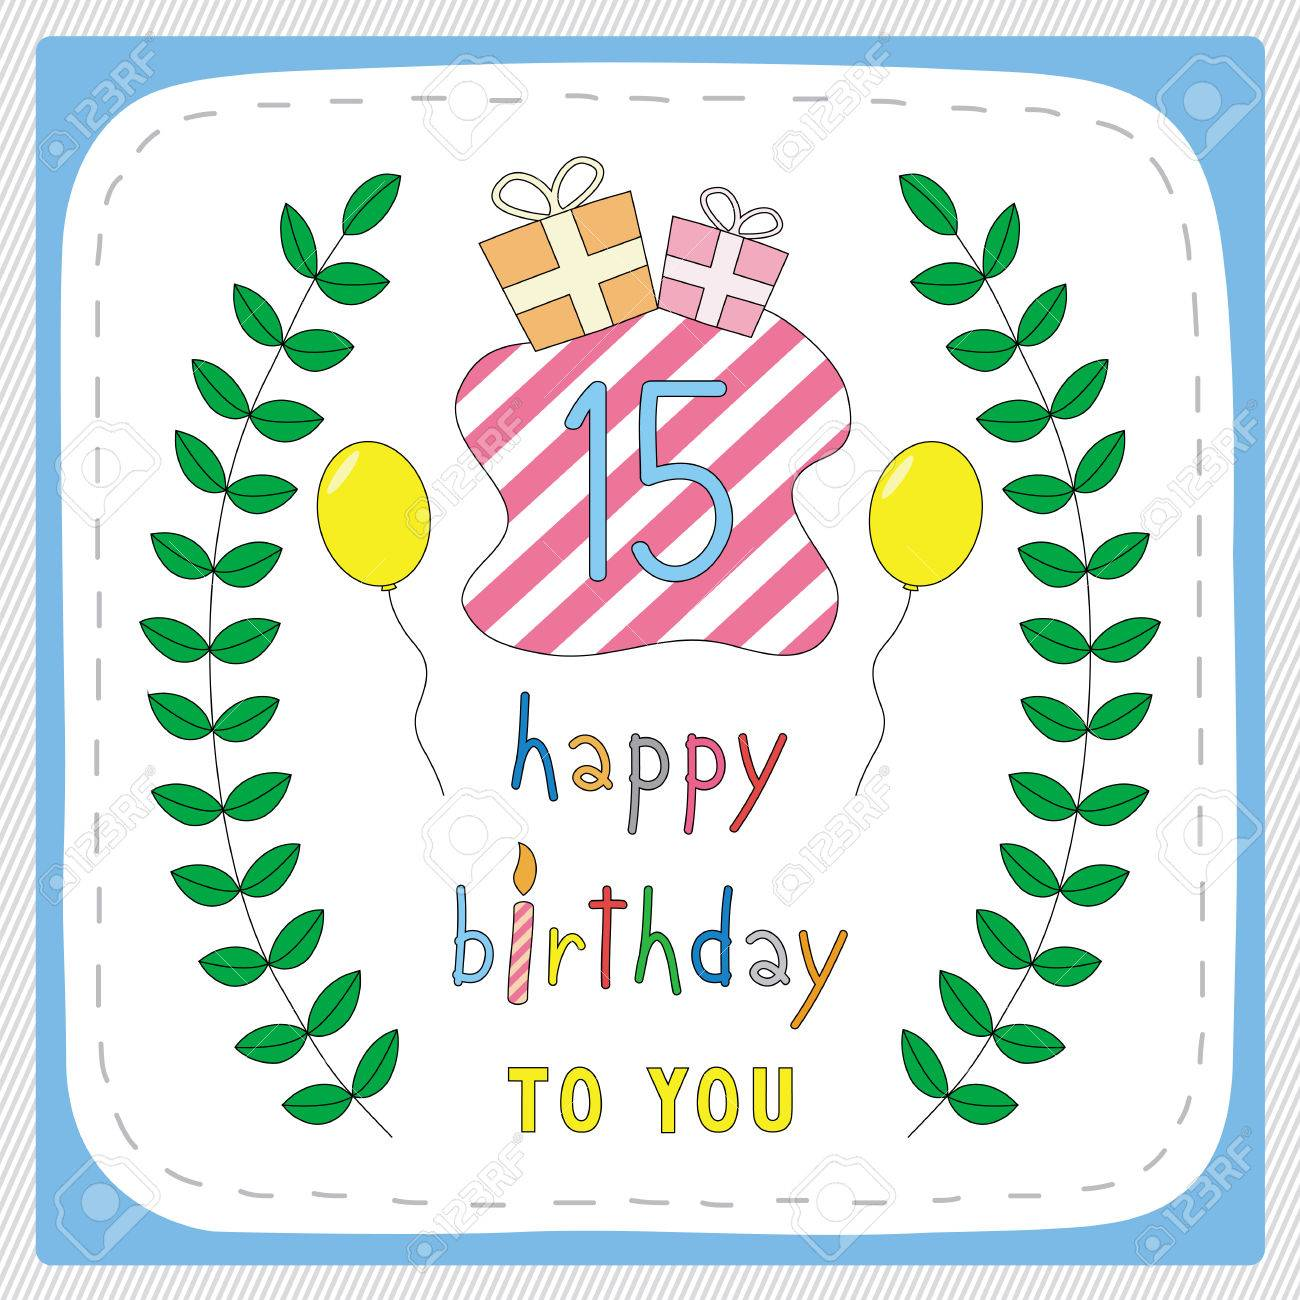 Happy Birthday Card With 15th Birthday And For 15 Years – 15th Birthday Card